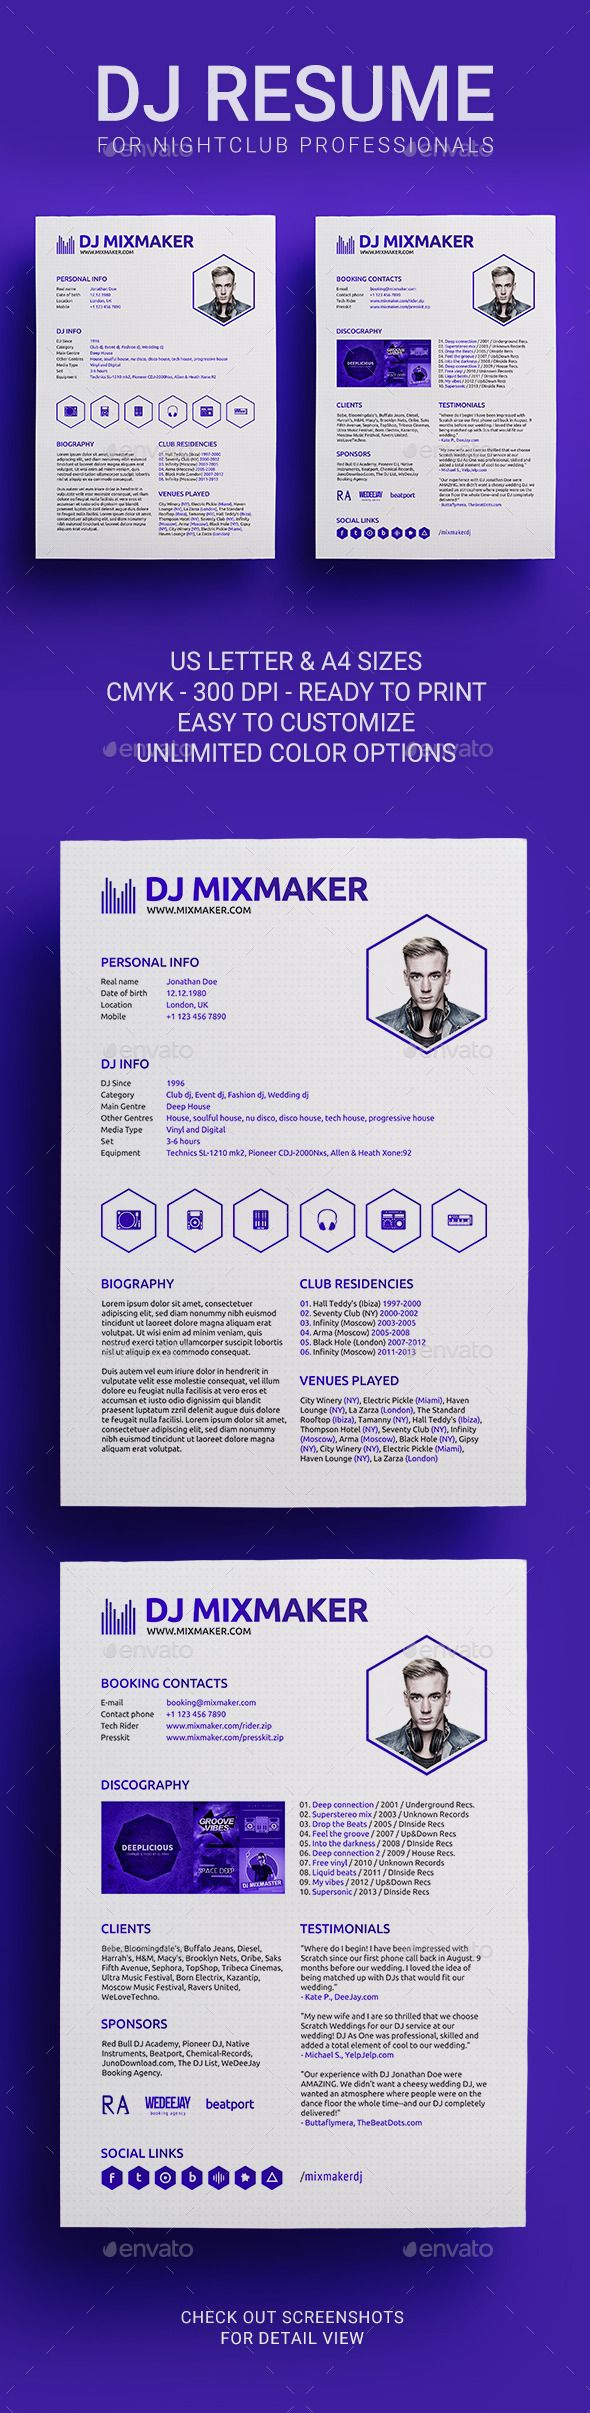 Sephora Resume Mixmaker  Dj Resume  Press Kit Psd Template  Pinterest  Press